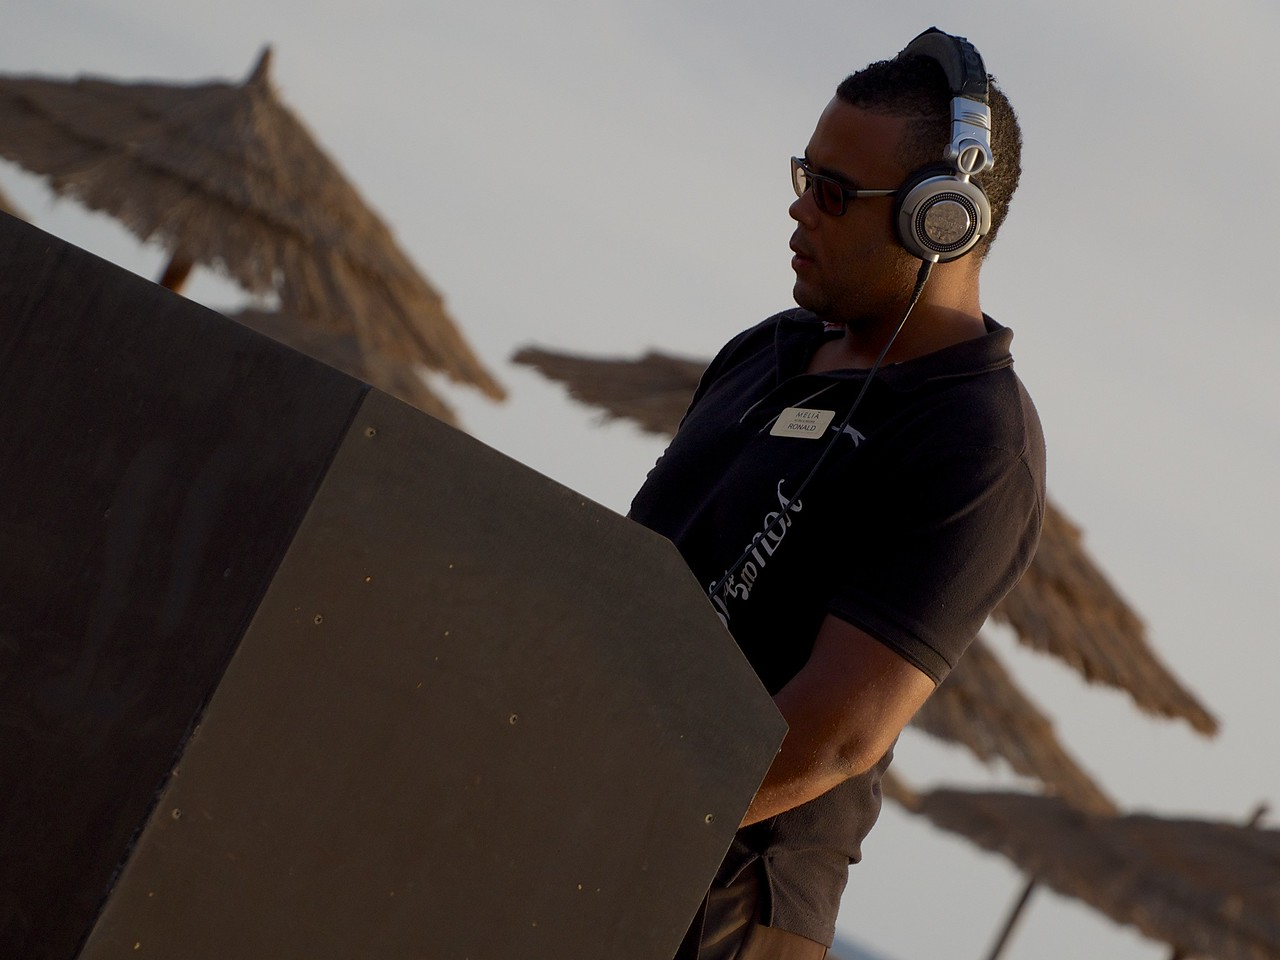 Sunset DJ sets the ambience with chill out numbers at the Melia Tortuga. Watch, listen & drink Moet......paradise.